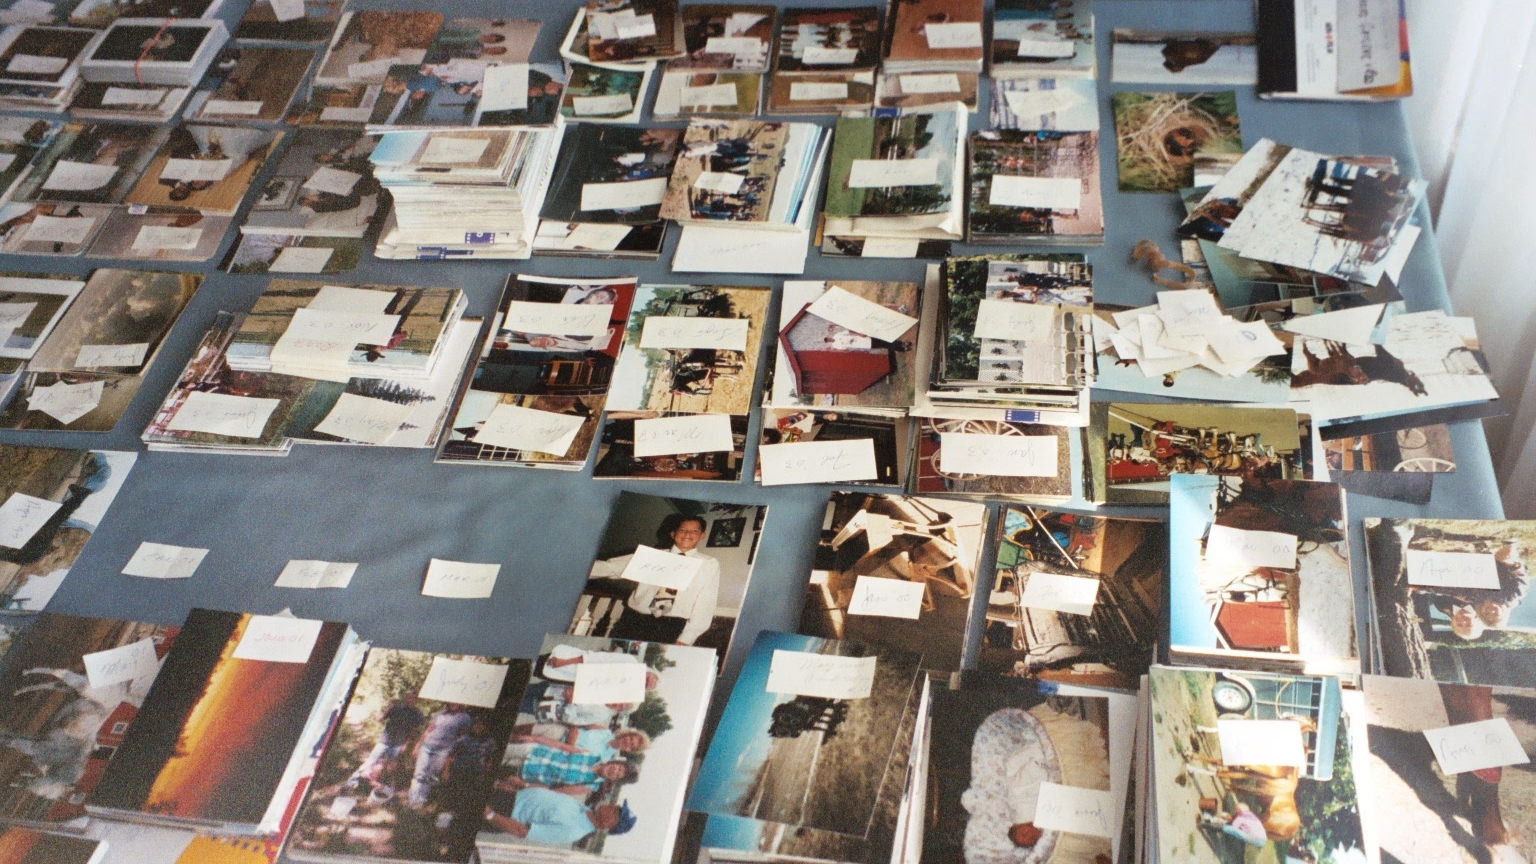 ABCs of Photo Organizing - narrow your collection to the best of the best